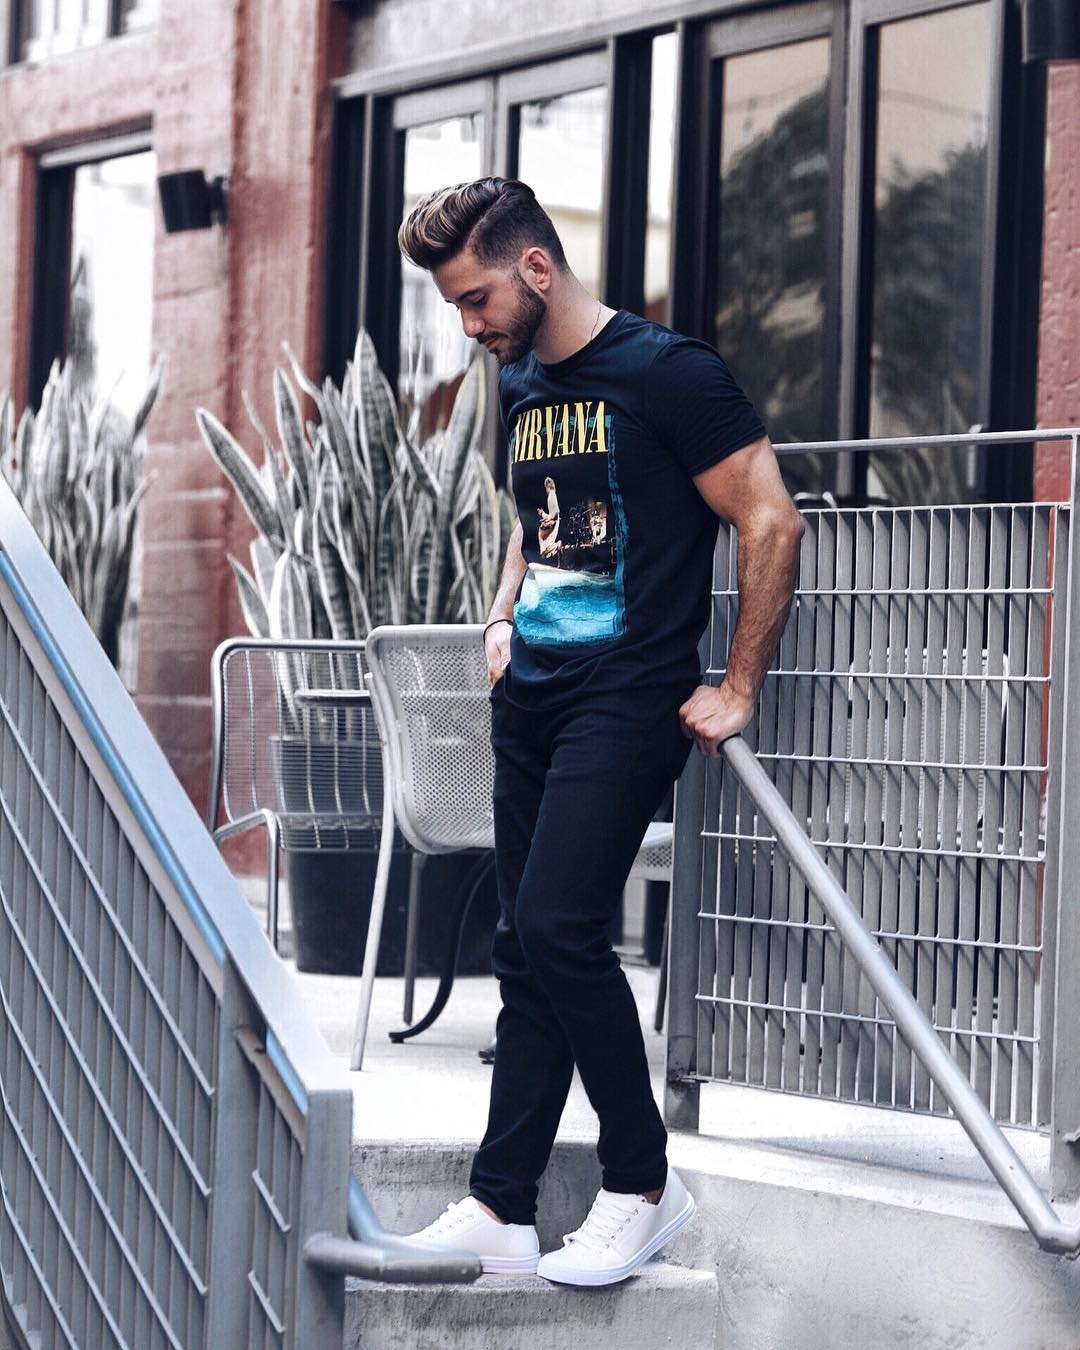 5 Cool T-shirt Outfits For Men #tshirt #outfits #mensfashion #streetstyle